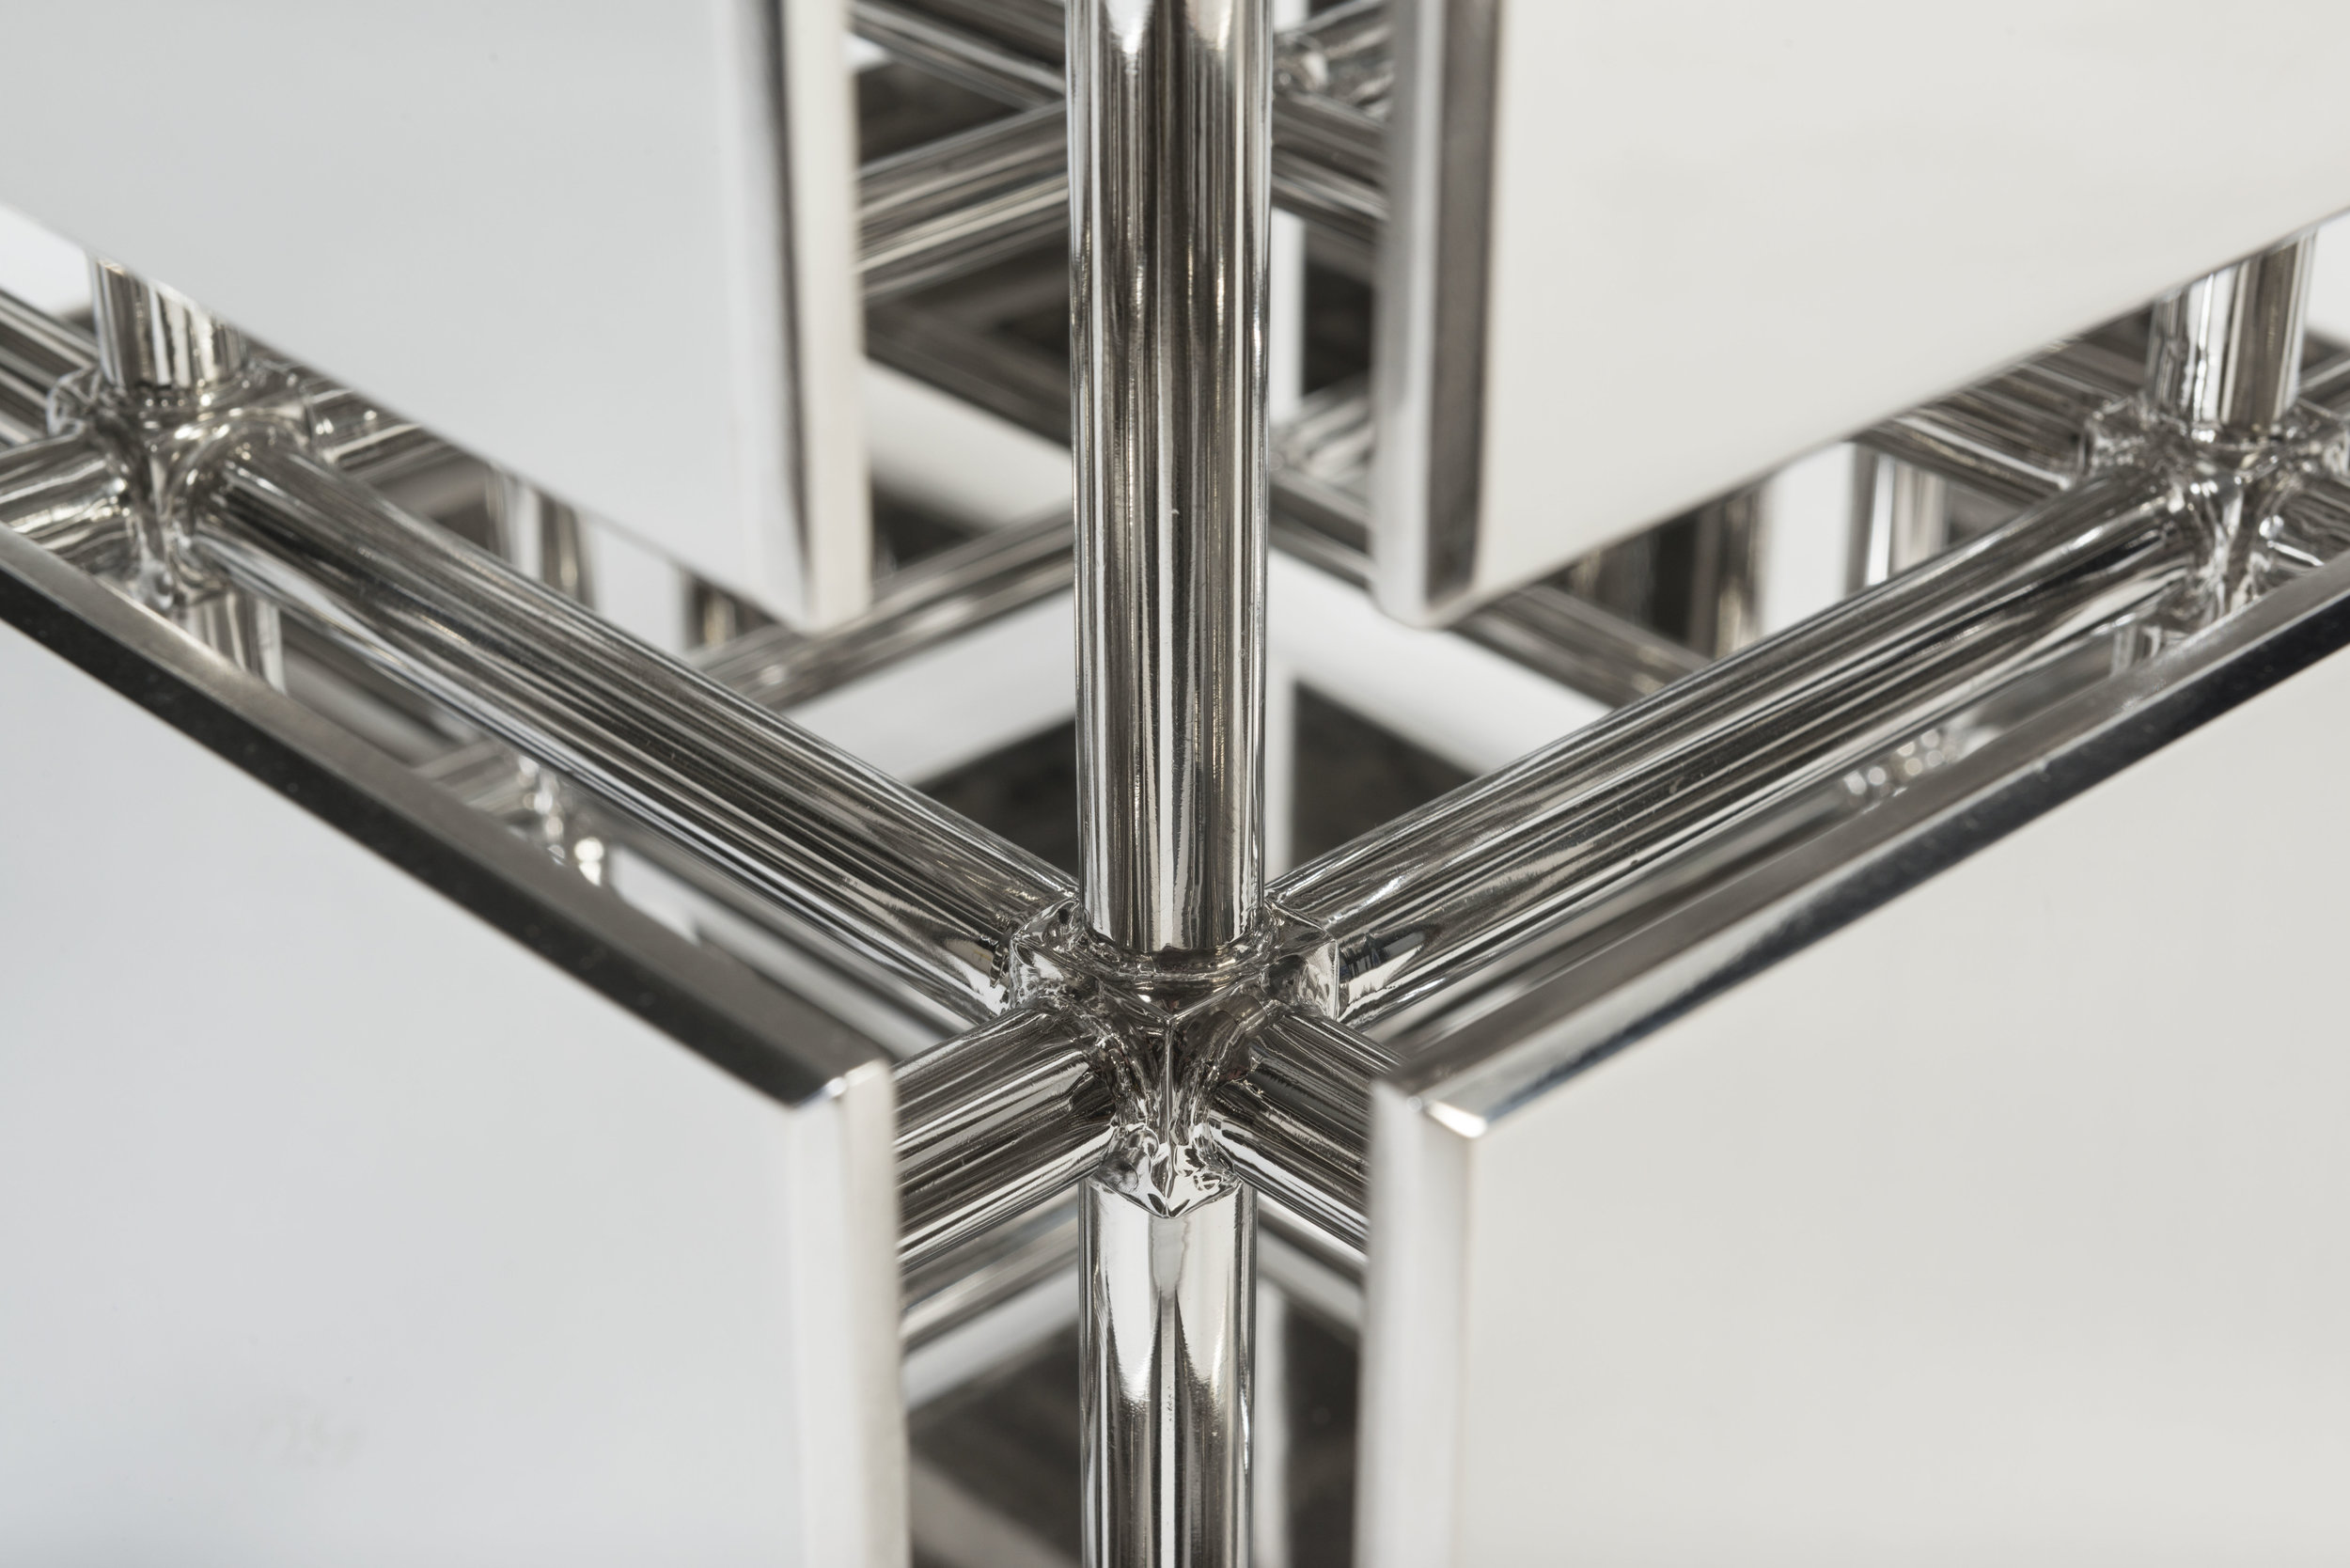 Rubicon-table-stainless-019.jpg